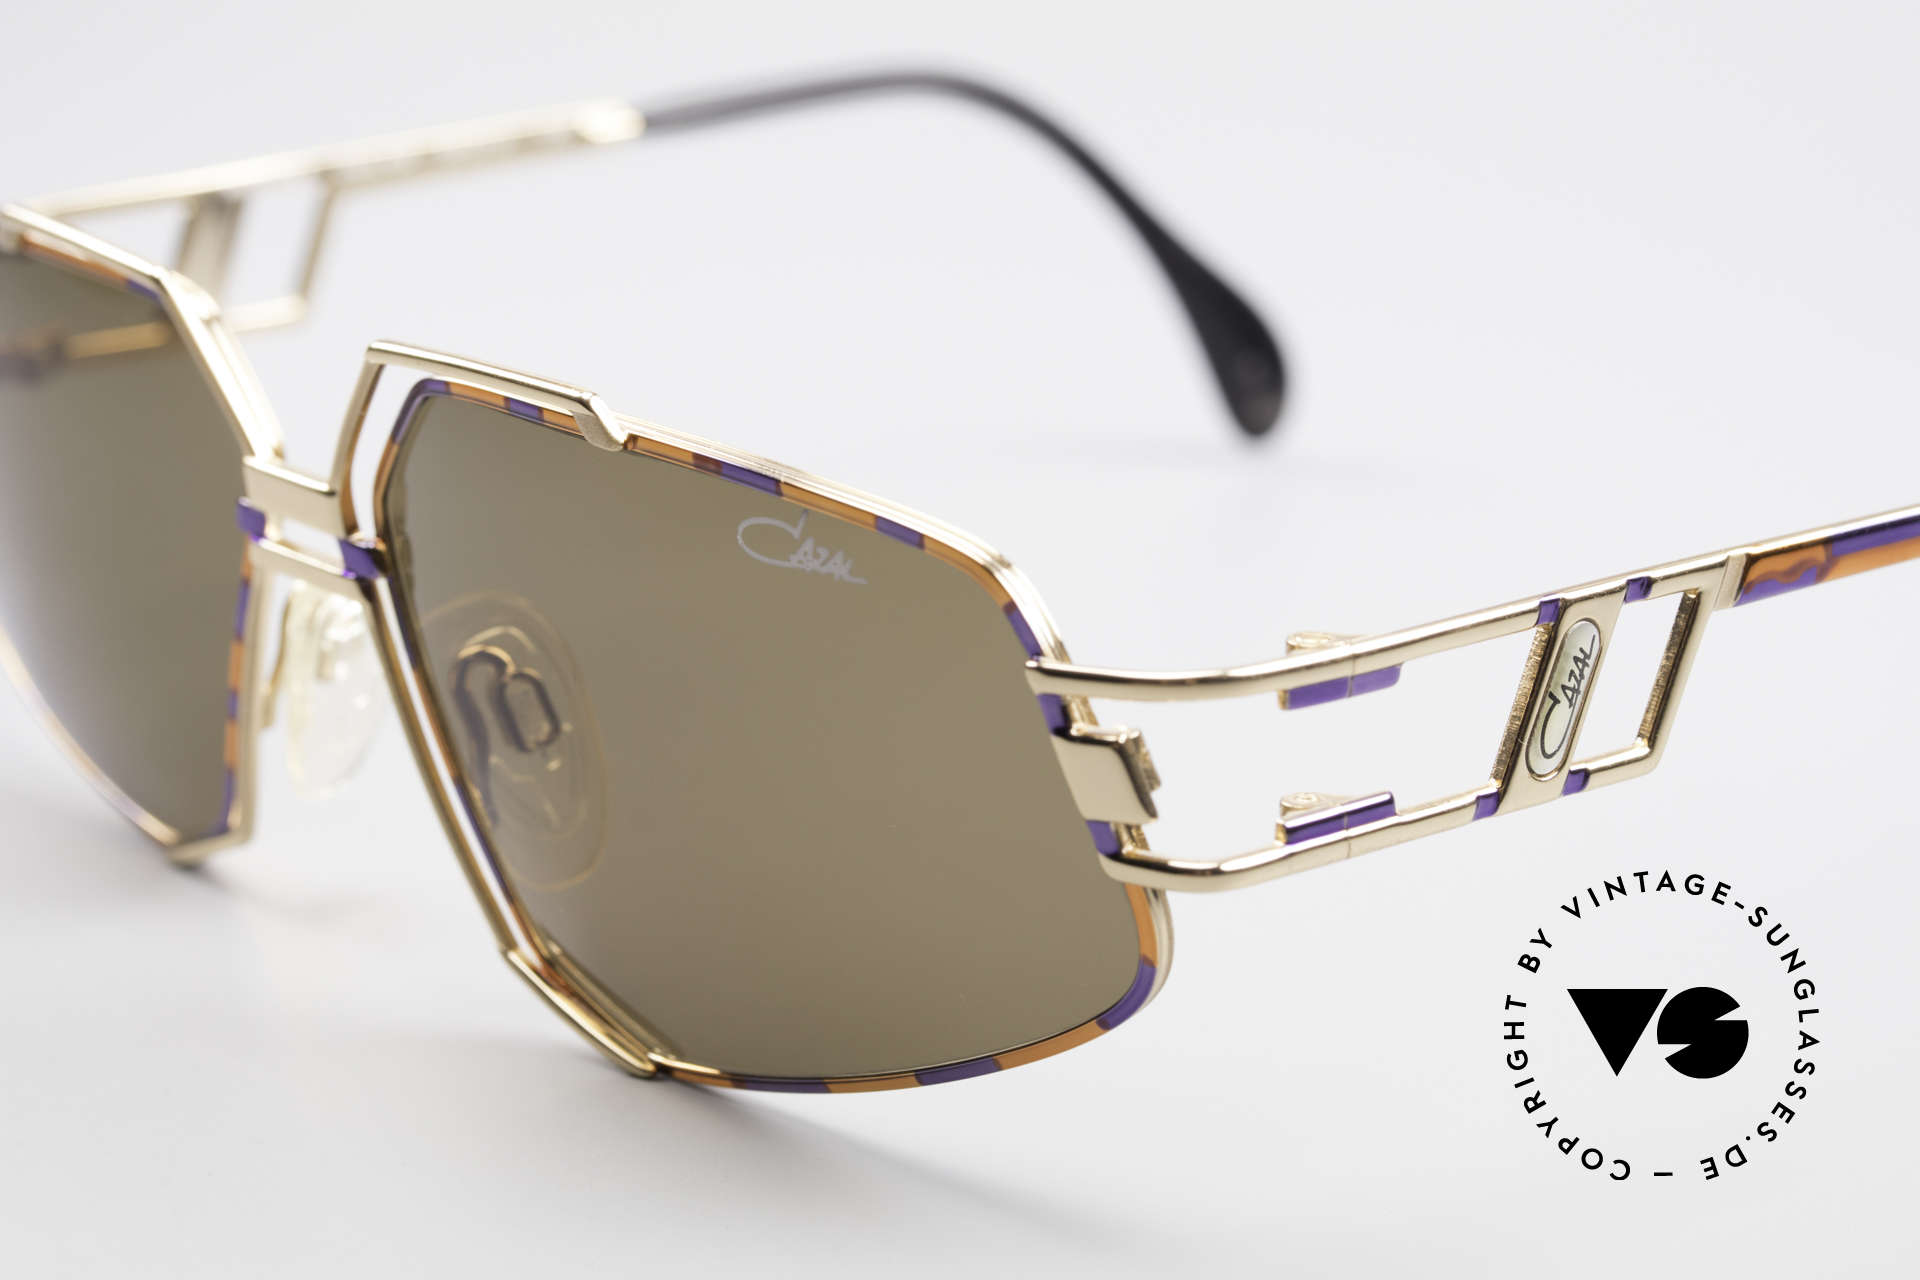 Cazal 961 Vintage Designer Sunglasses, today, a sought-after accessory for every Hip-Hop outfit, Made for Men and Women